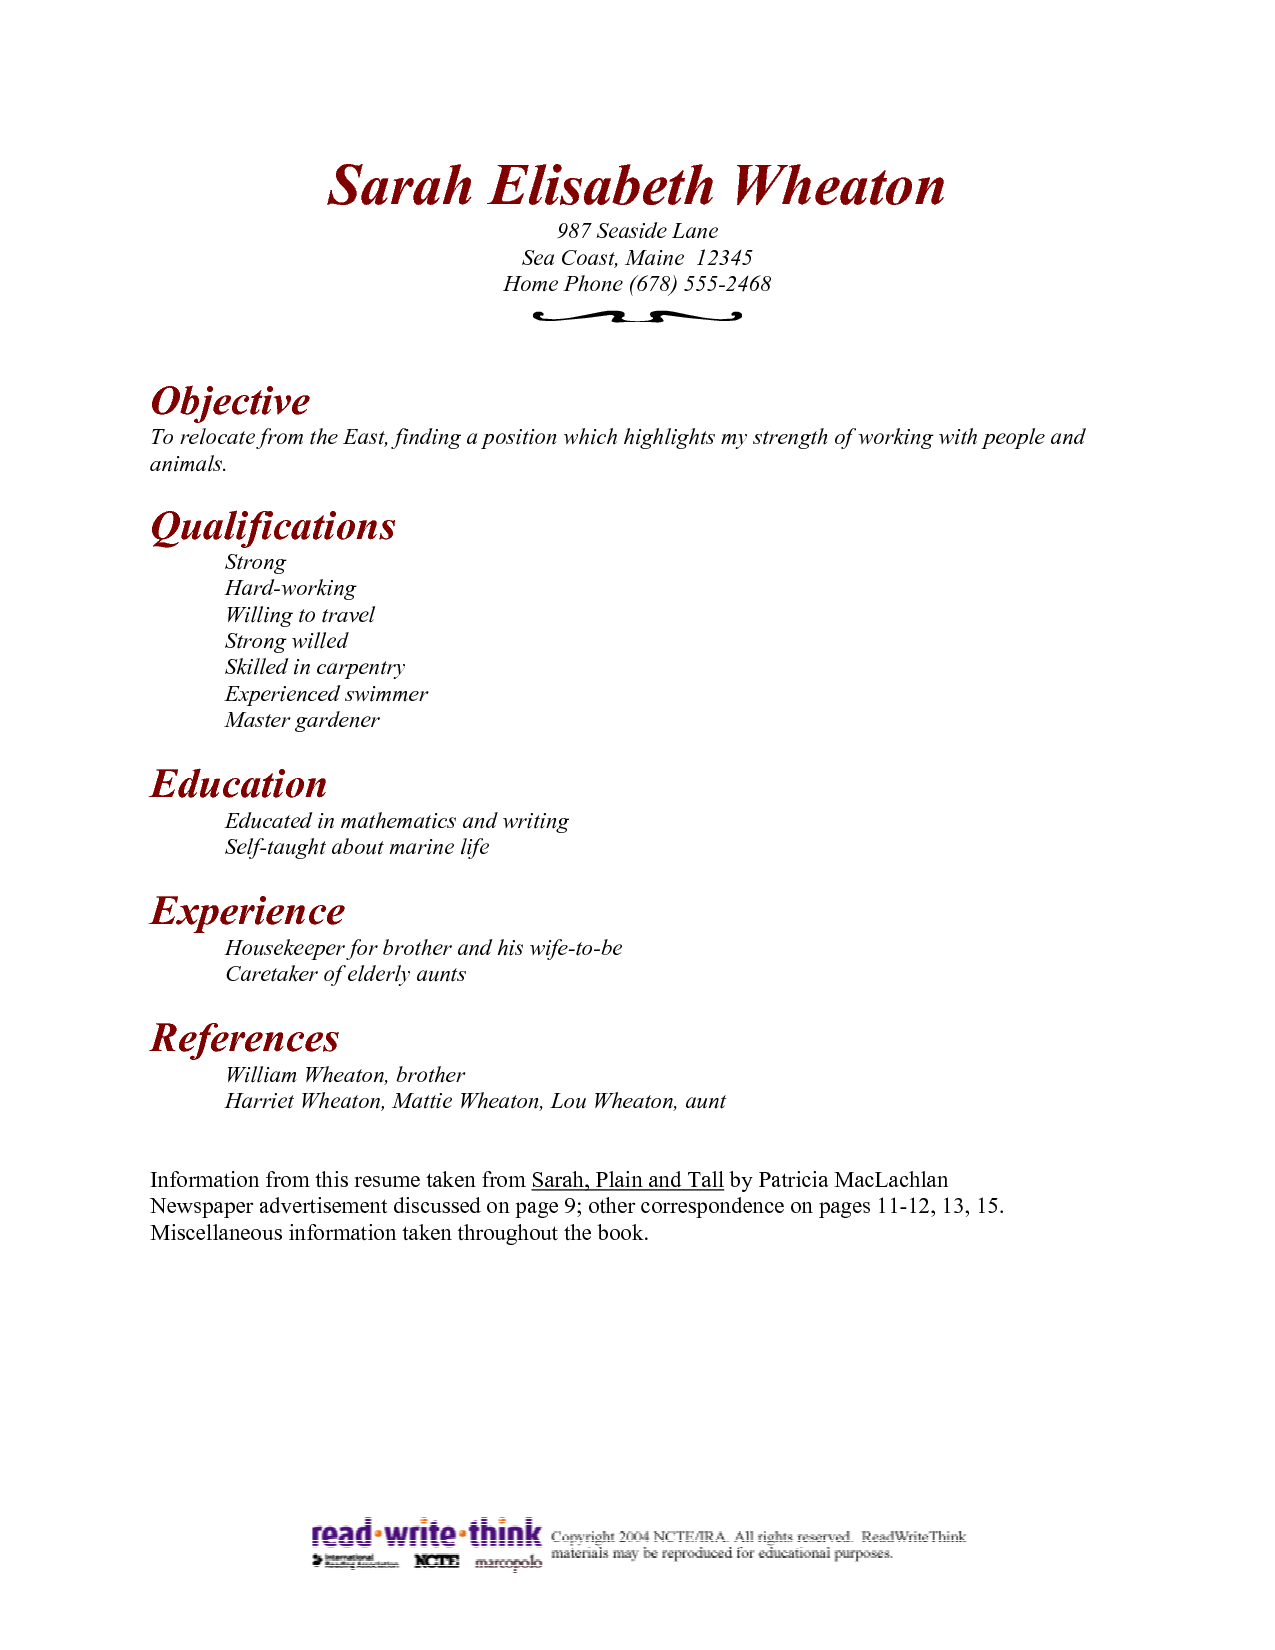 Resume For A Hospital Housekeeper Ad